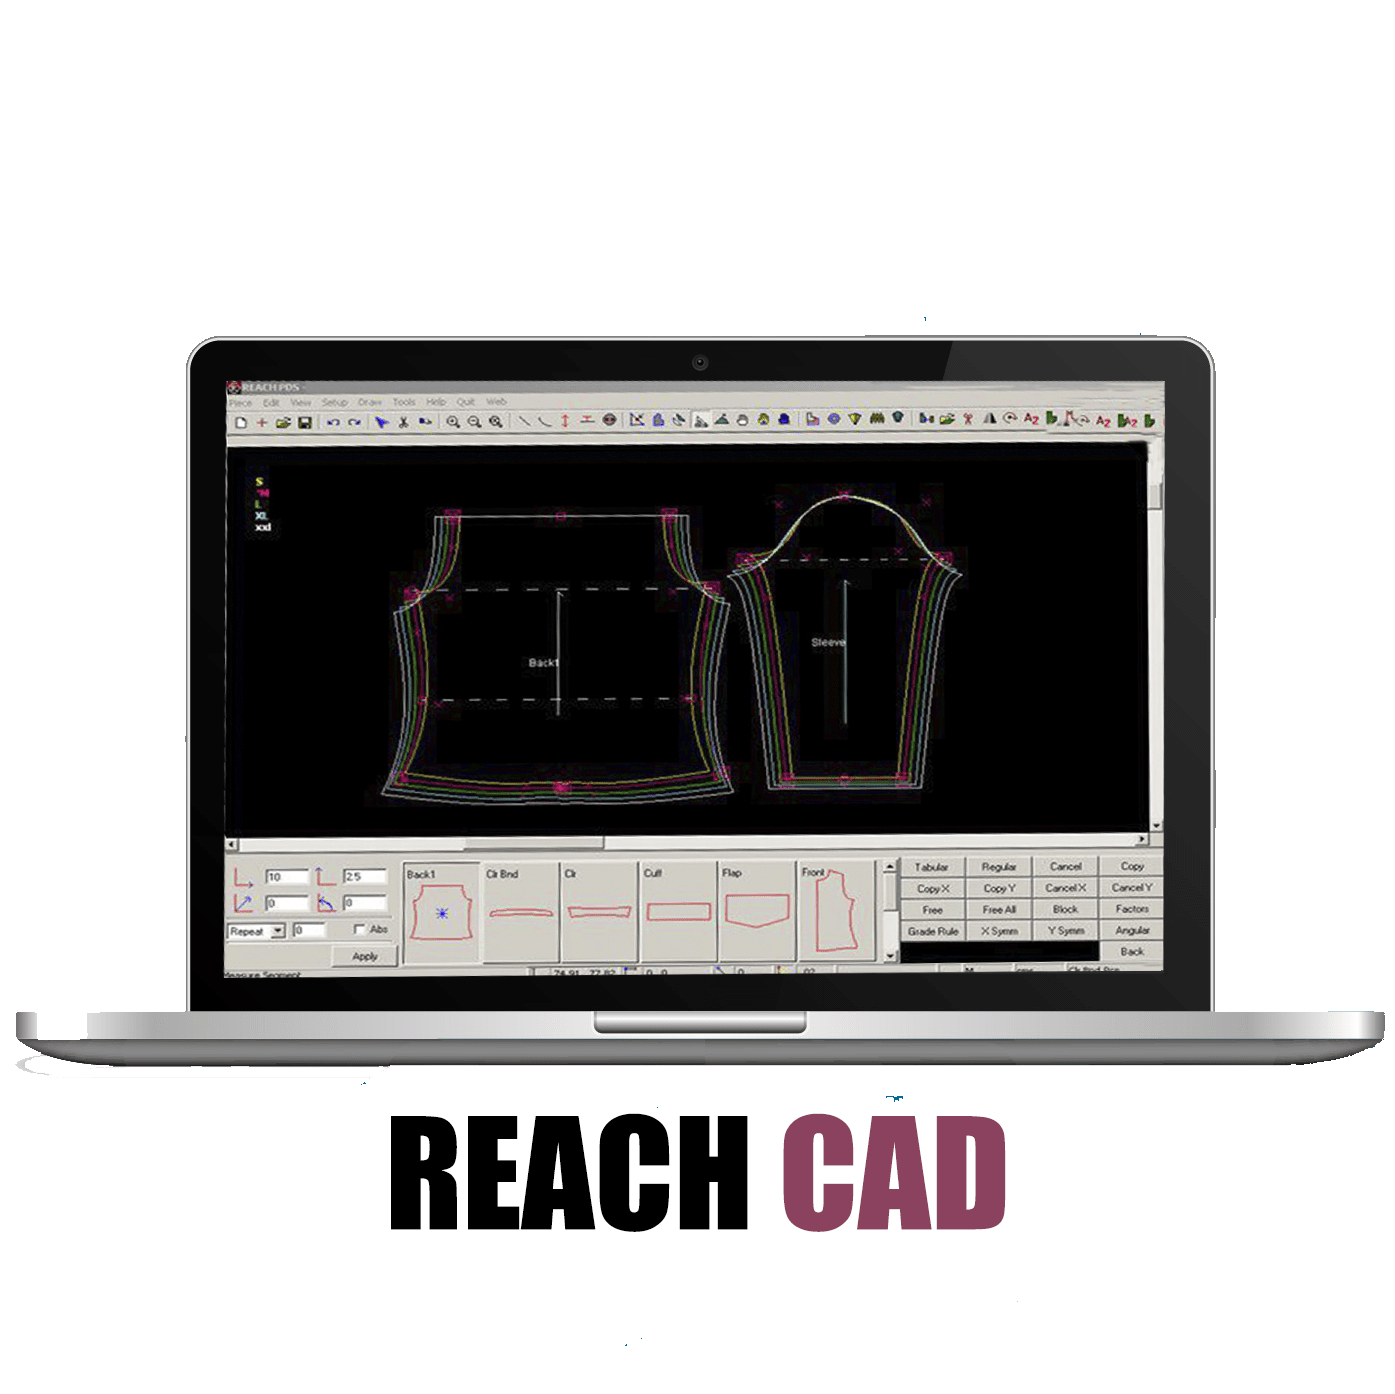 fashion-cad-software-reach-cad-1